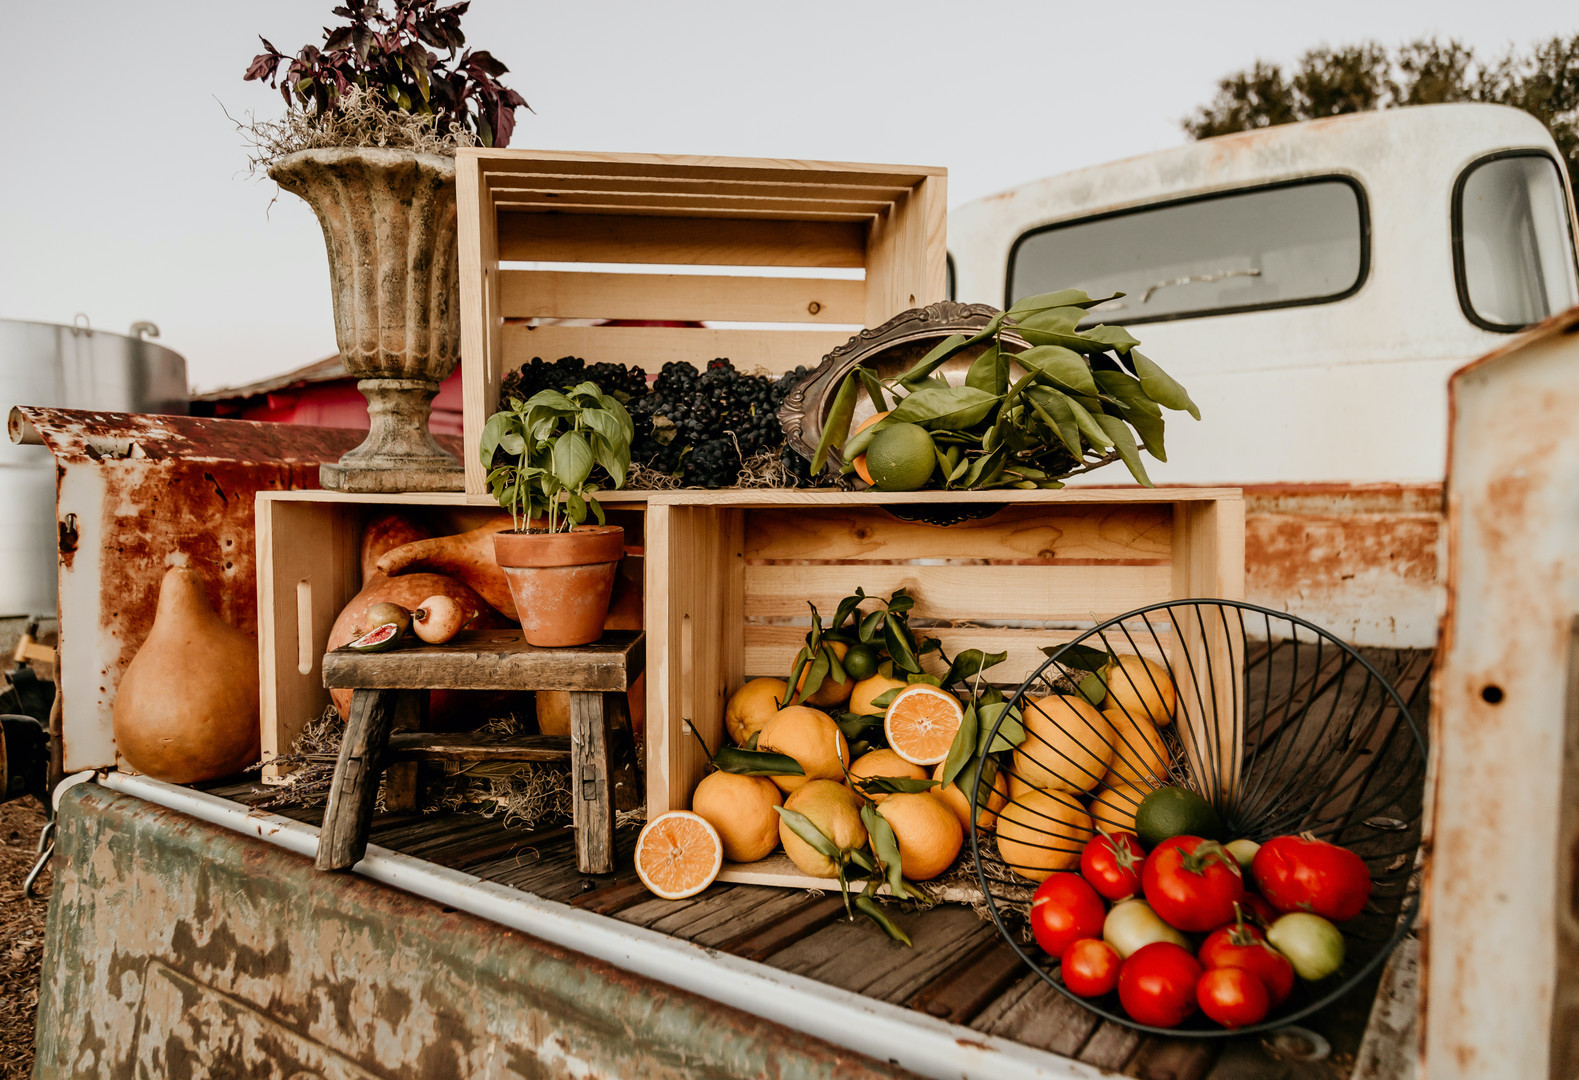 bed of a truck filled with crates of greenery and fresh fruit, oranges and pomegranates